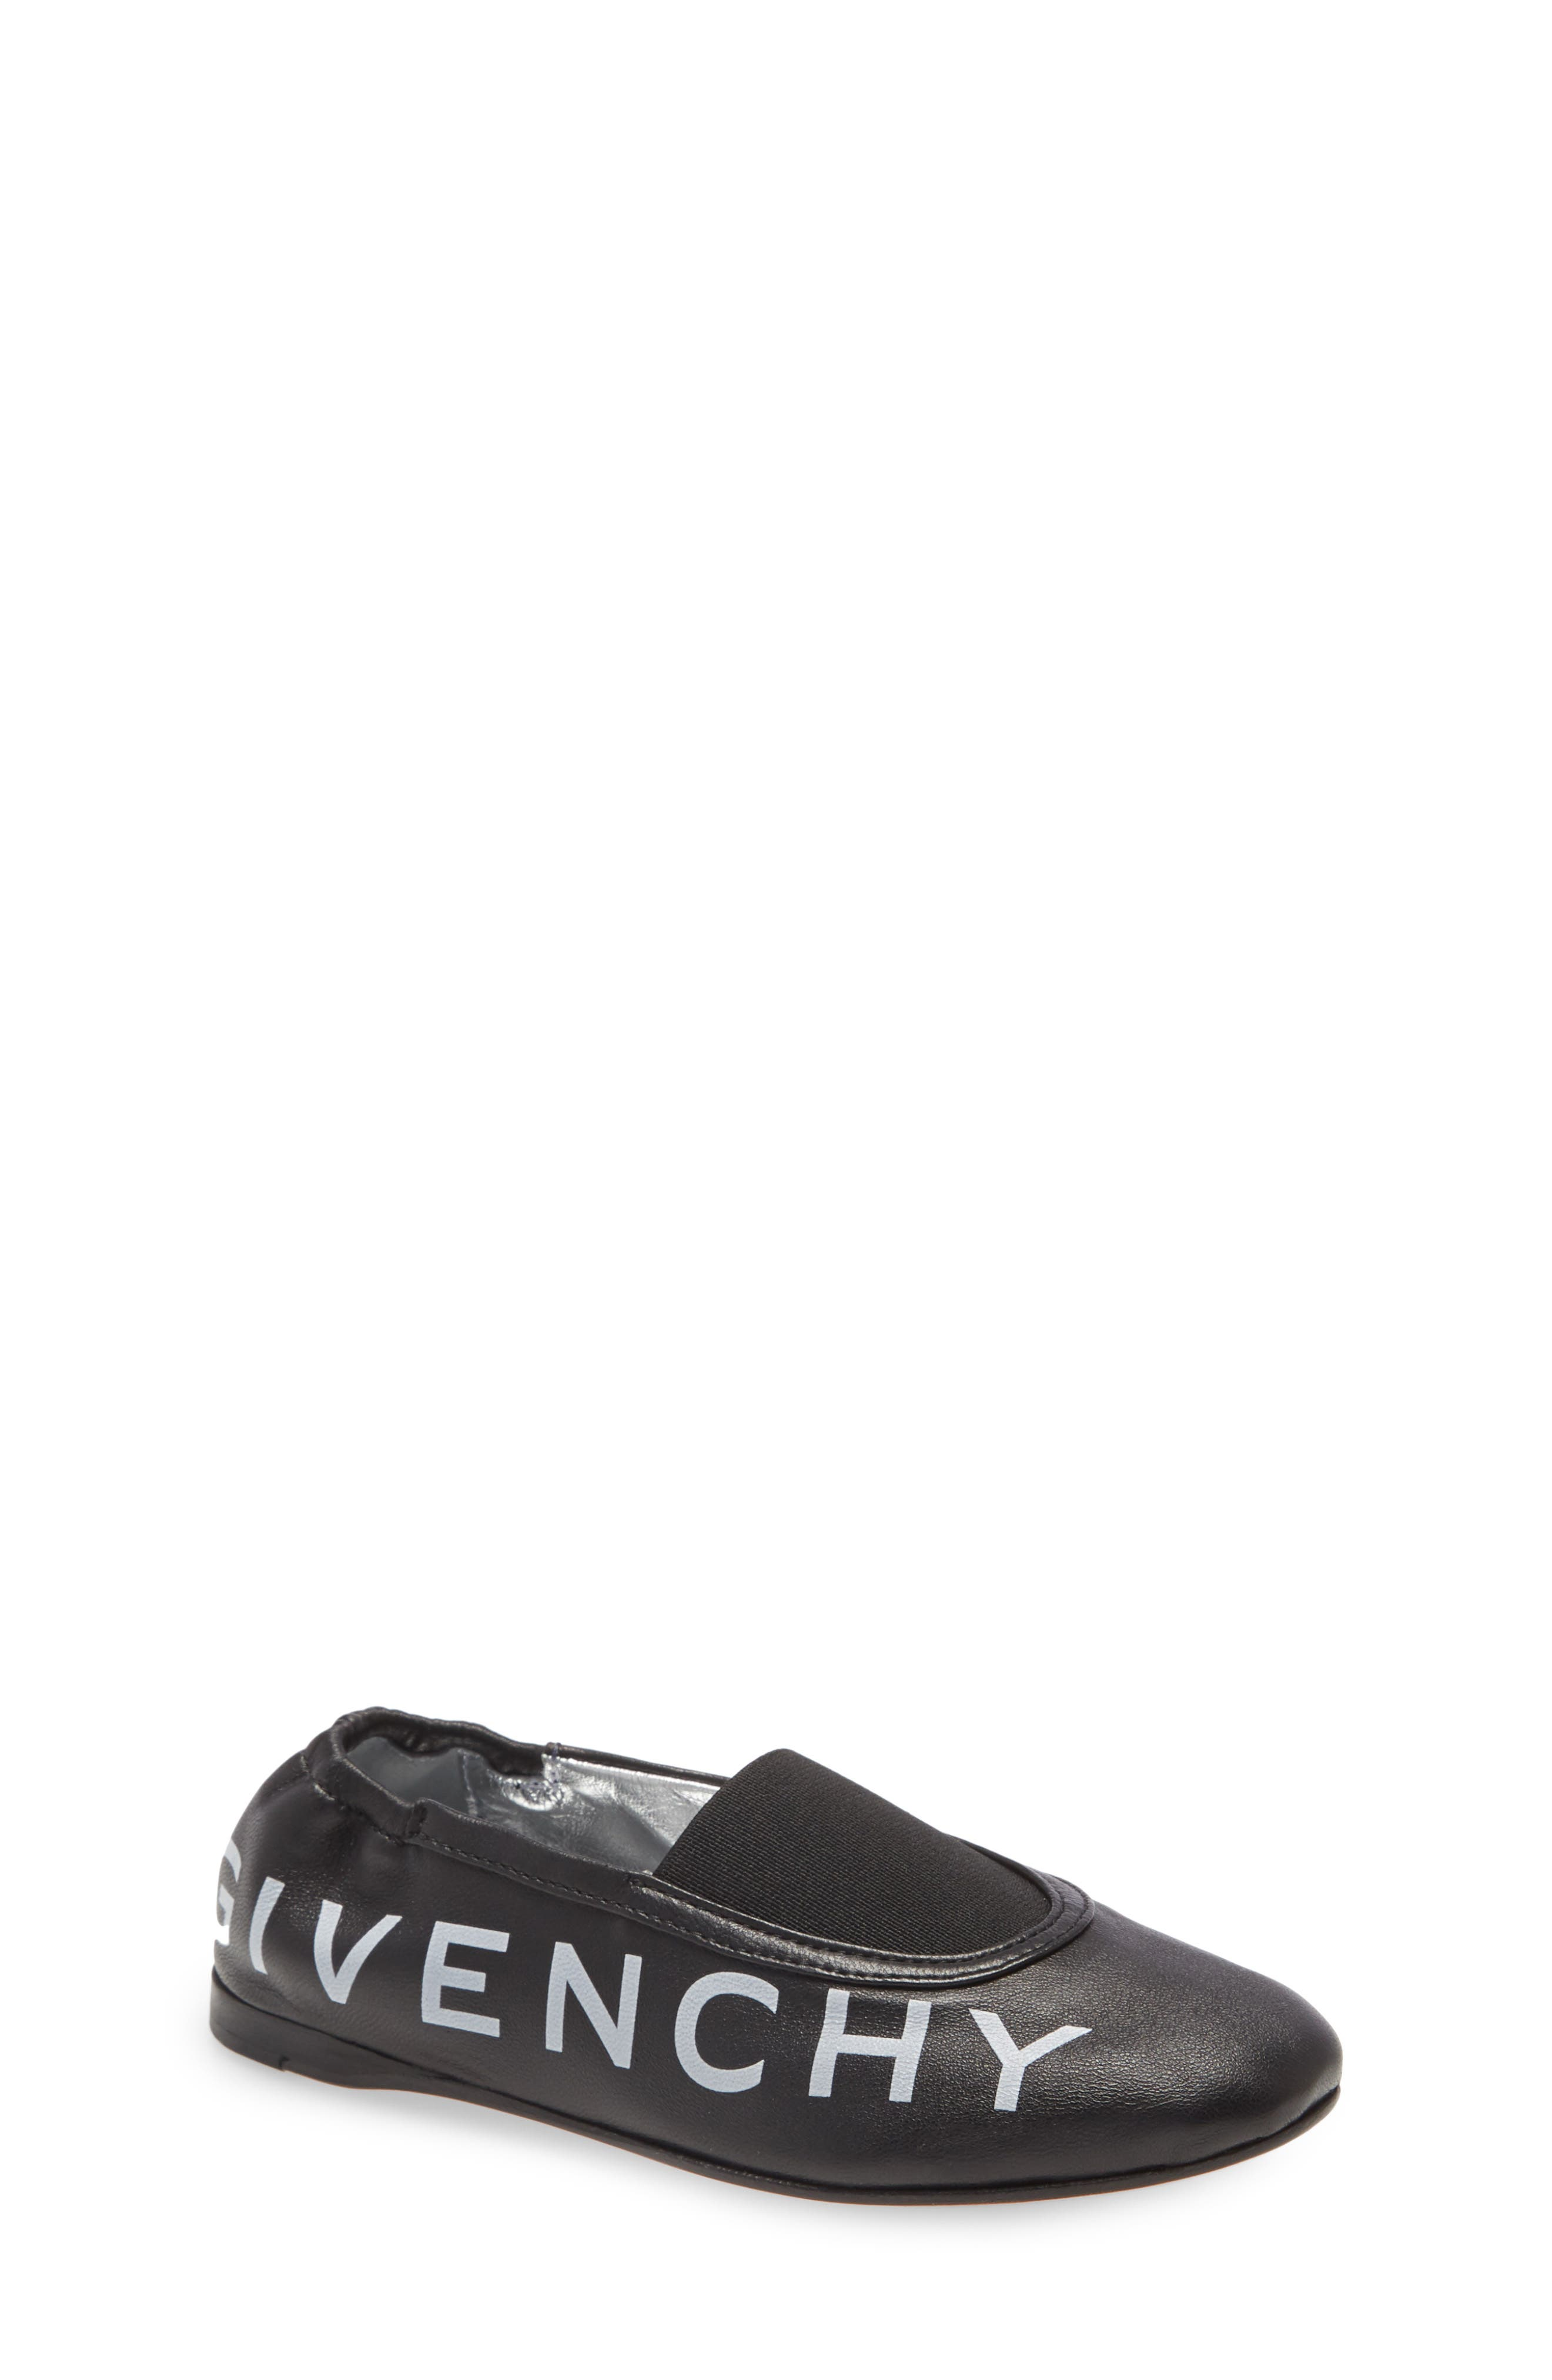 Toddler Girls' Givenchy Shoes (Sizes 7